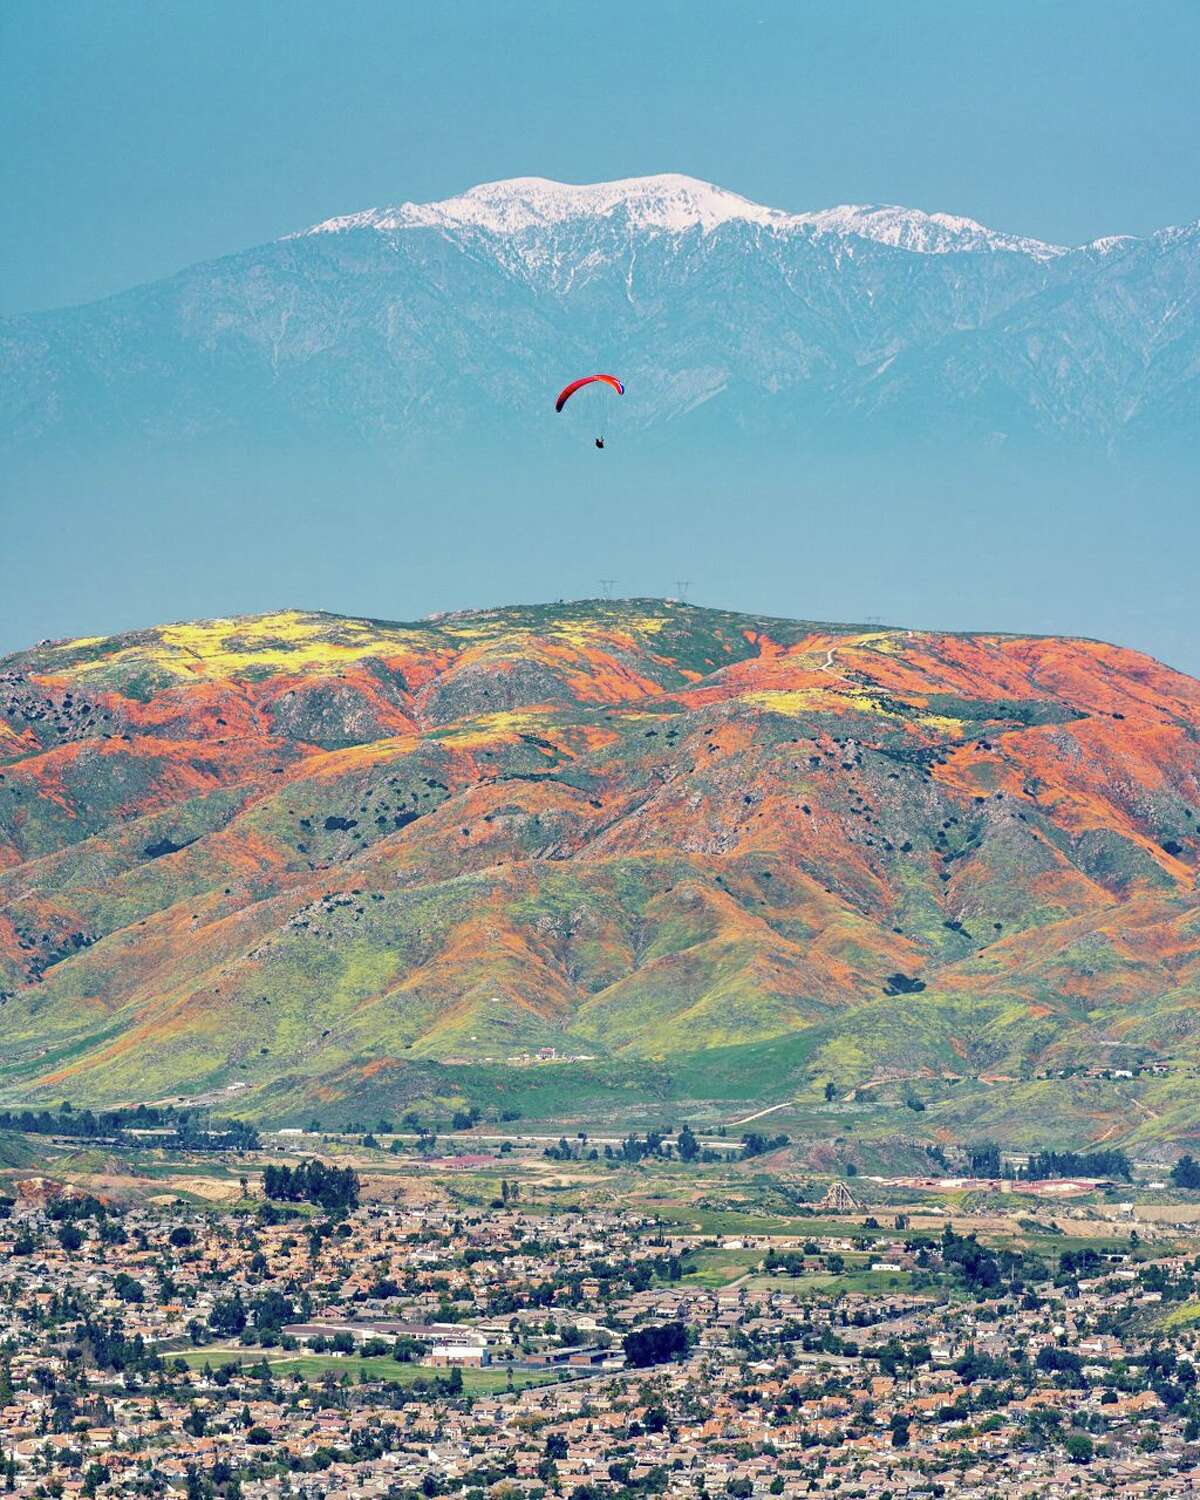 Santa Monica-based photographer Kurt Lawson captured the super bloom in Lake Elsinore, Calif., from a unique angle on a hike in the Santa Ana Mountains on March 24, 2019.